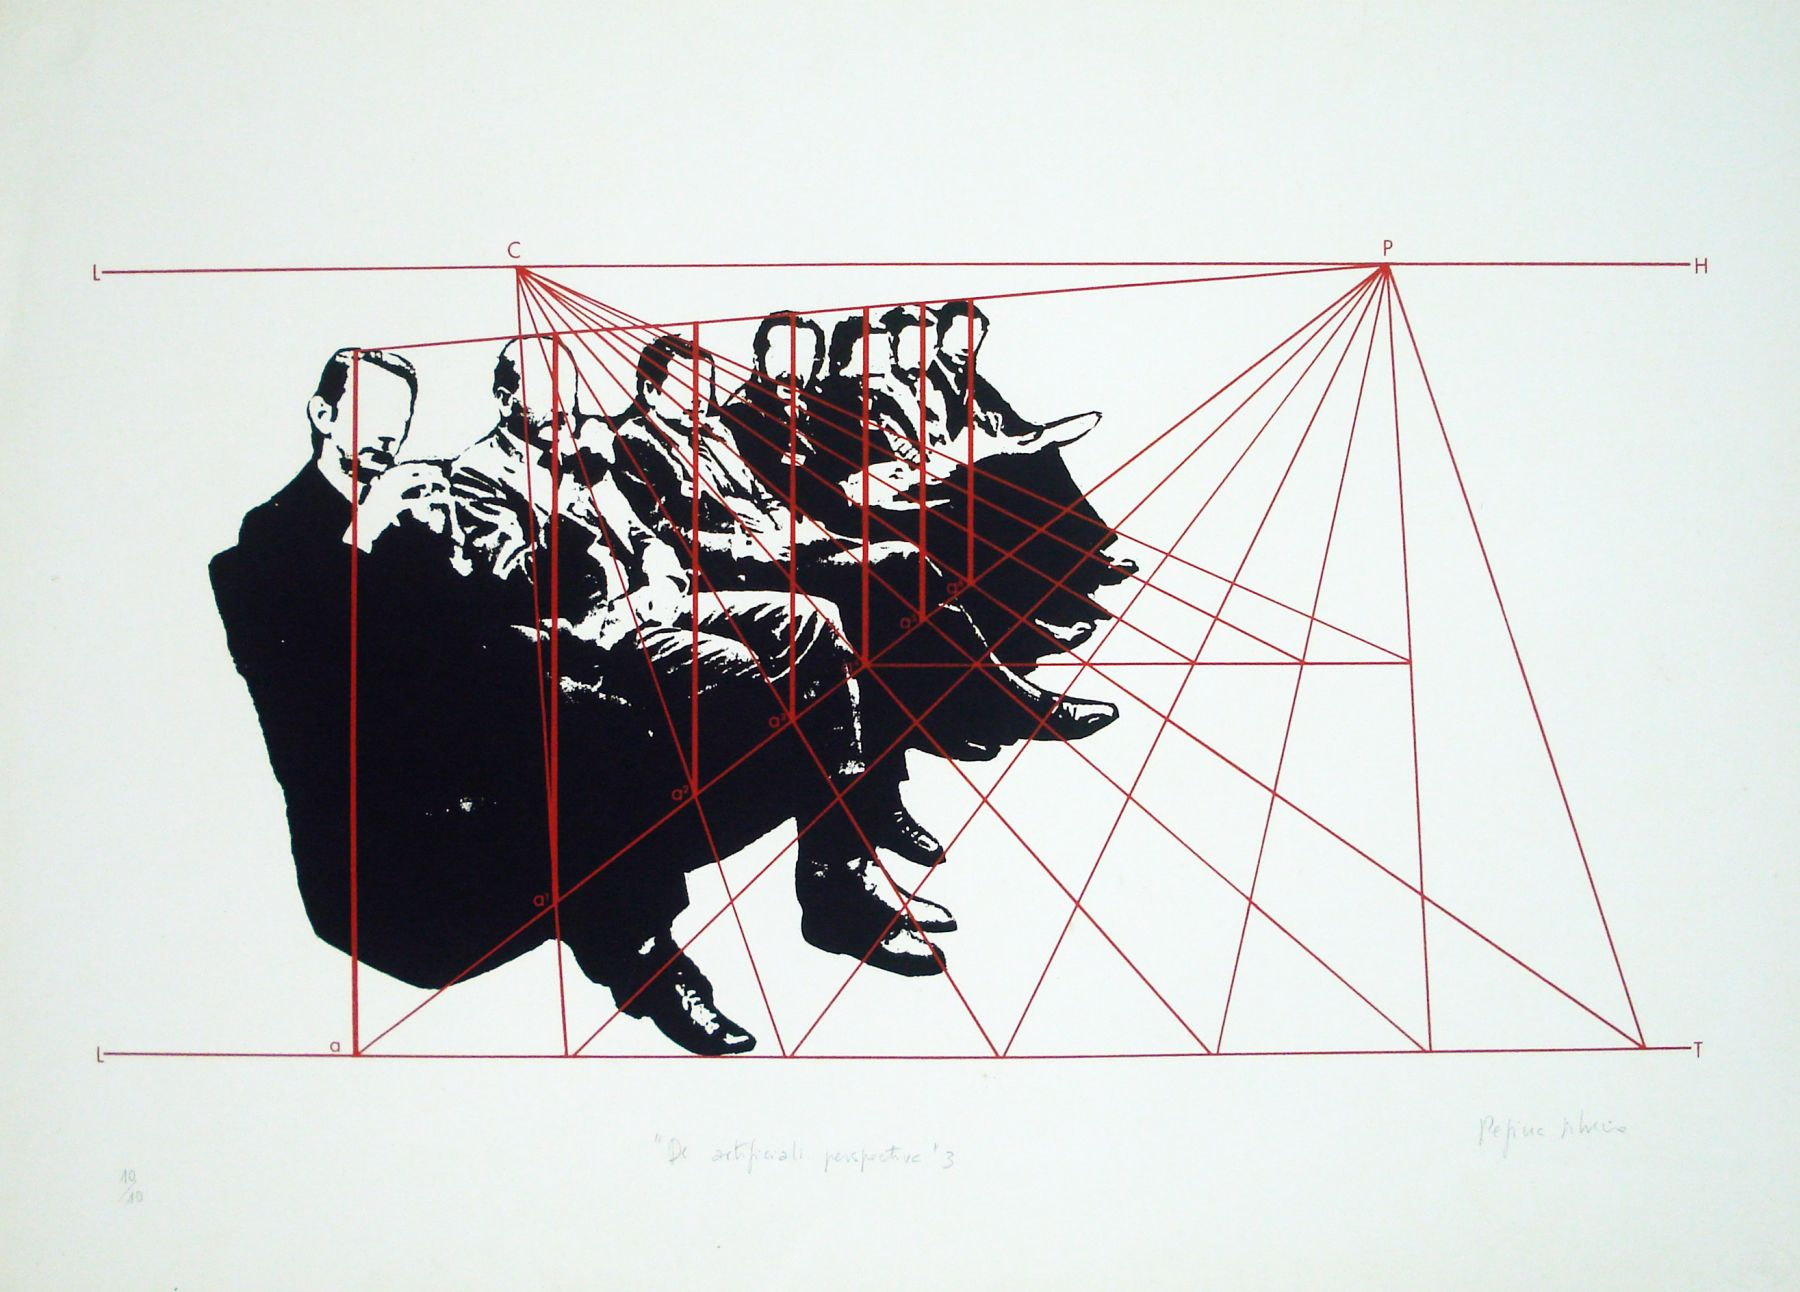 De Artificiali Perspectiva 3, 1976, Silkscreen